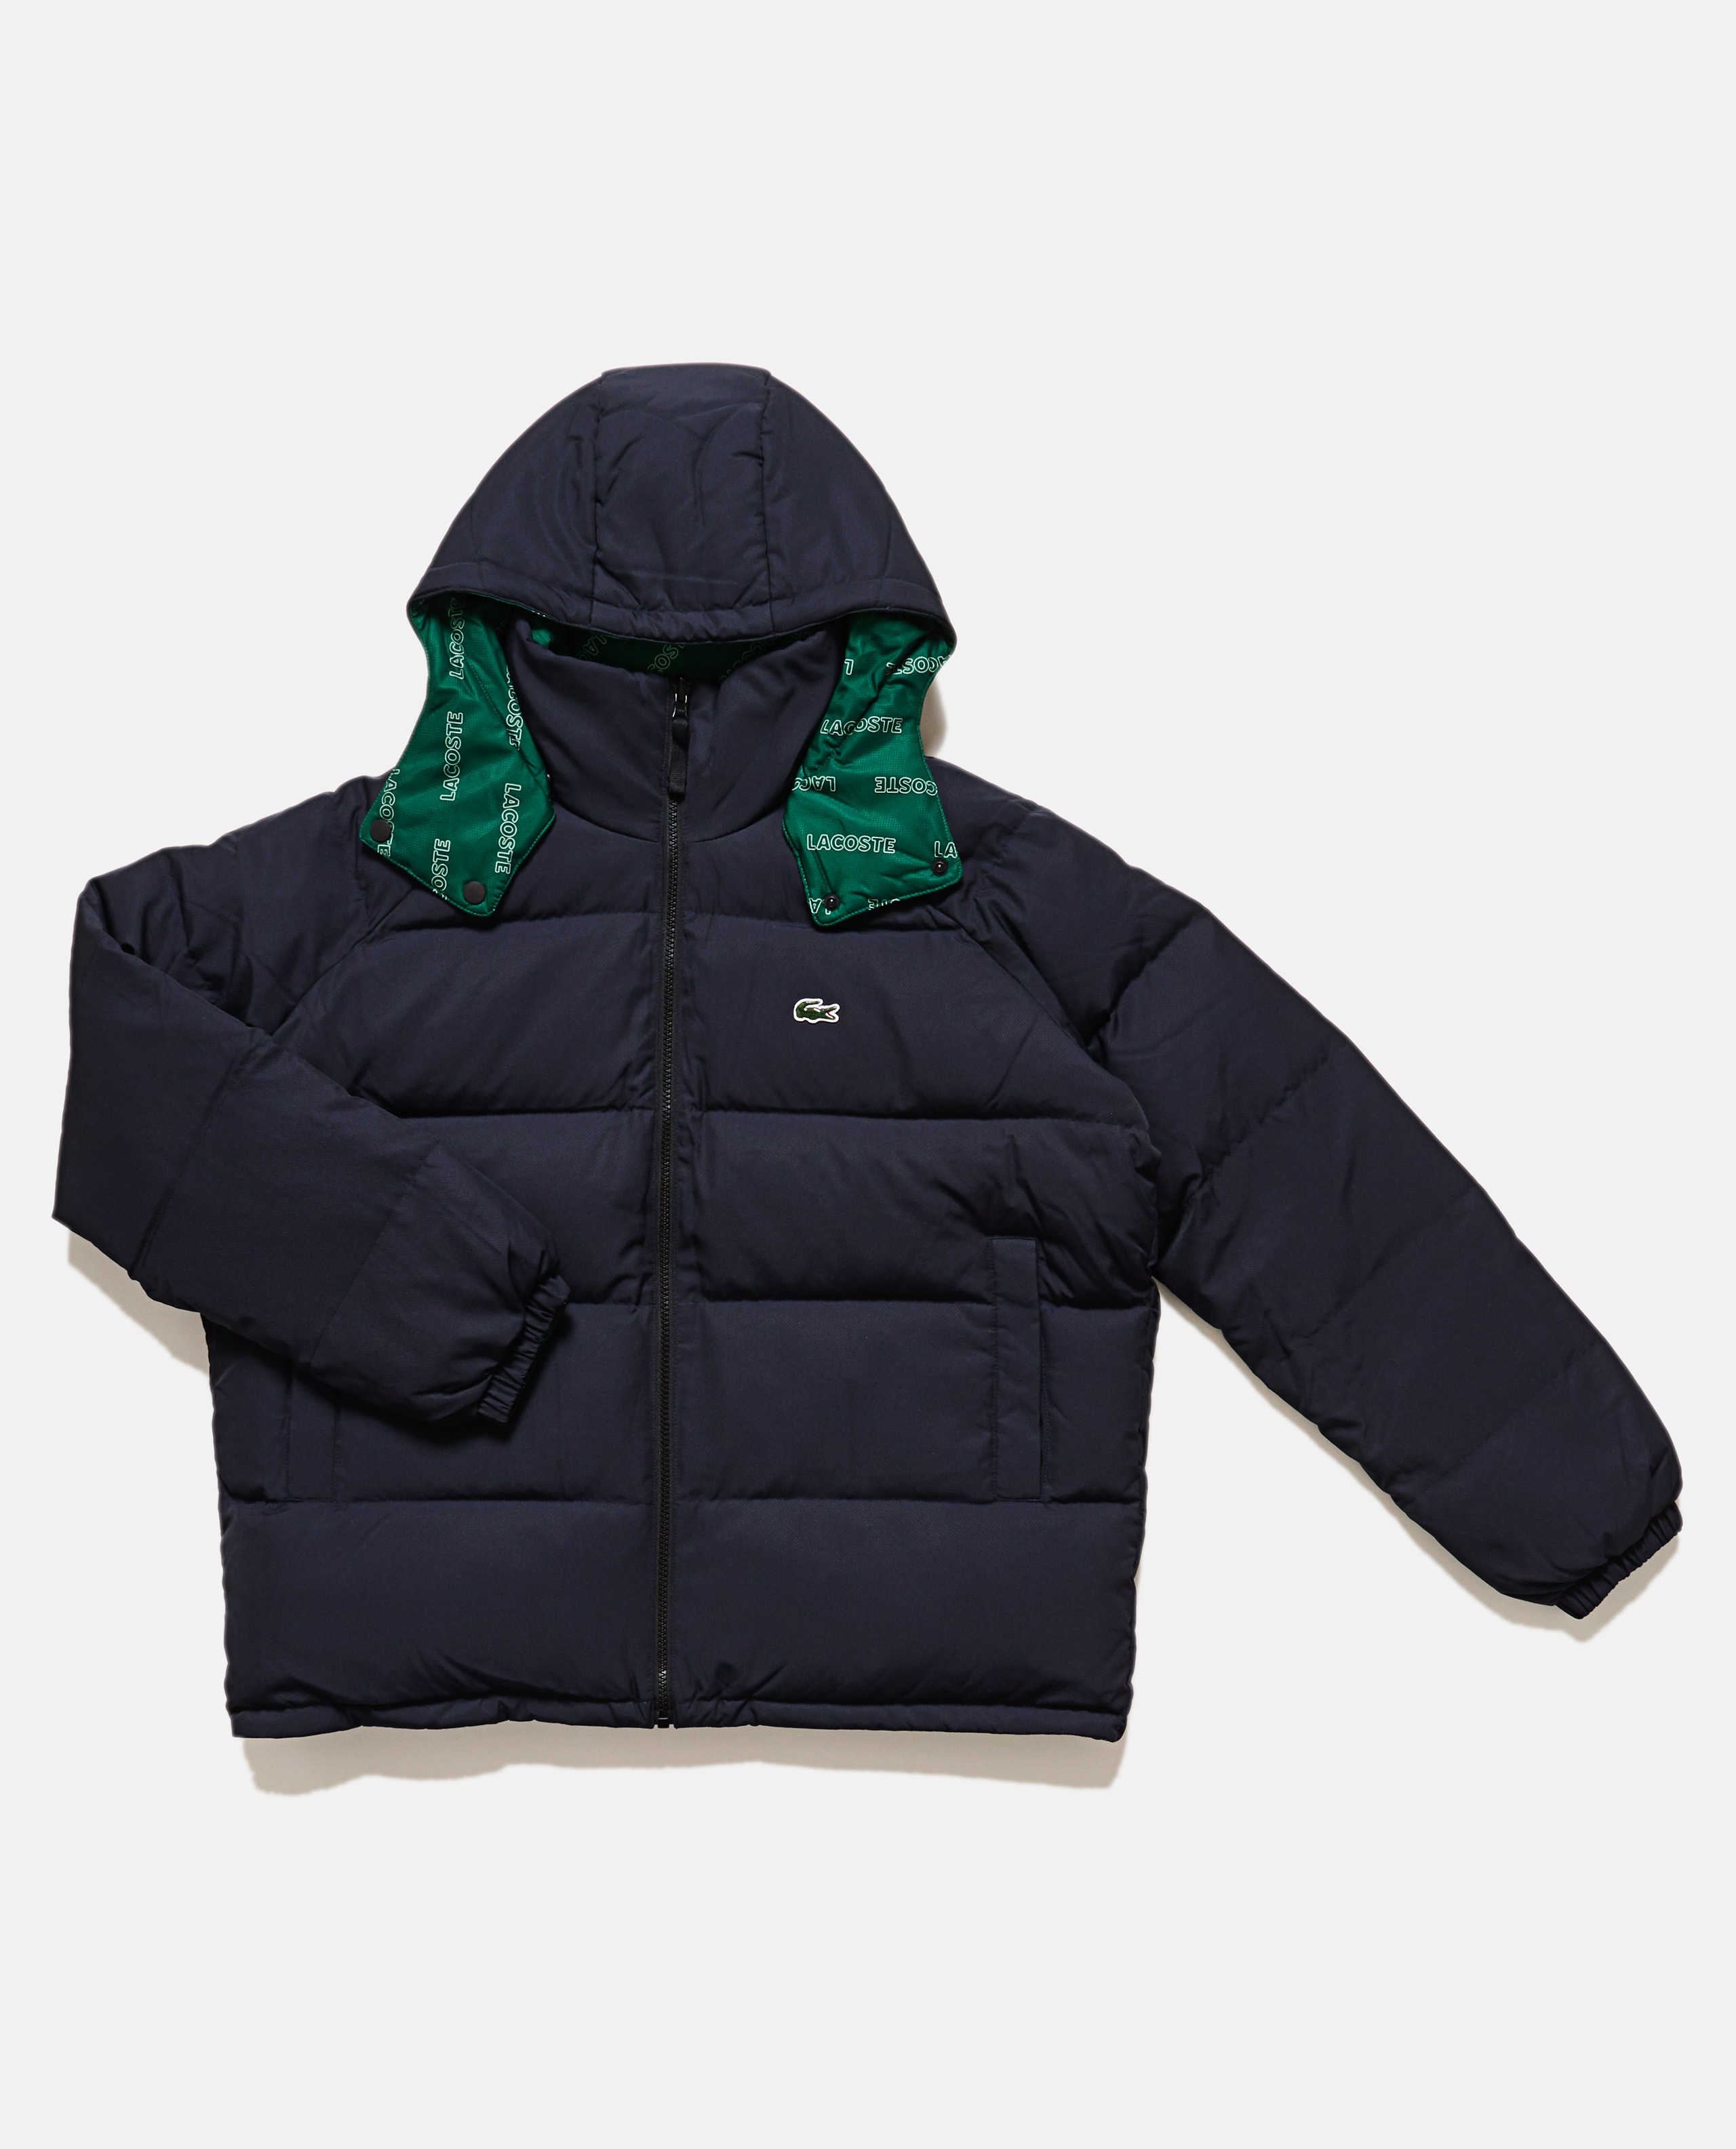 całkowicie stylowy buty do separacji Trampki 2018 Padded double face jacket with Lacoste LIVE printed lining